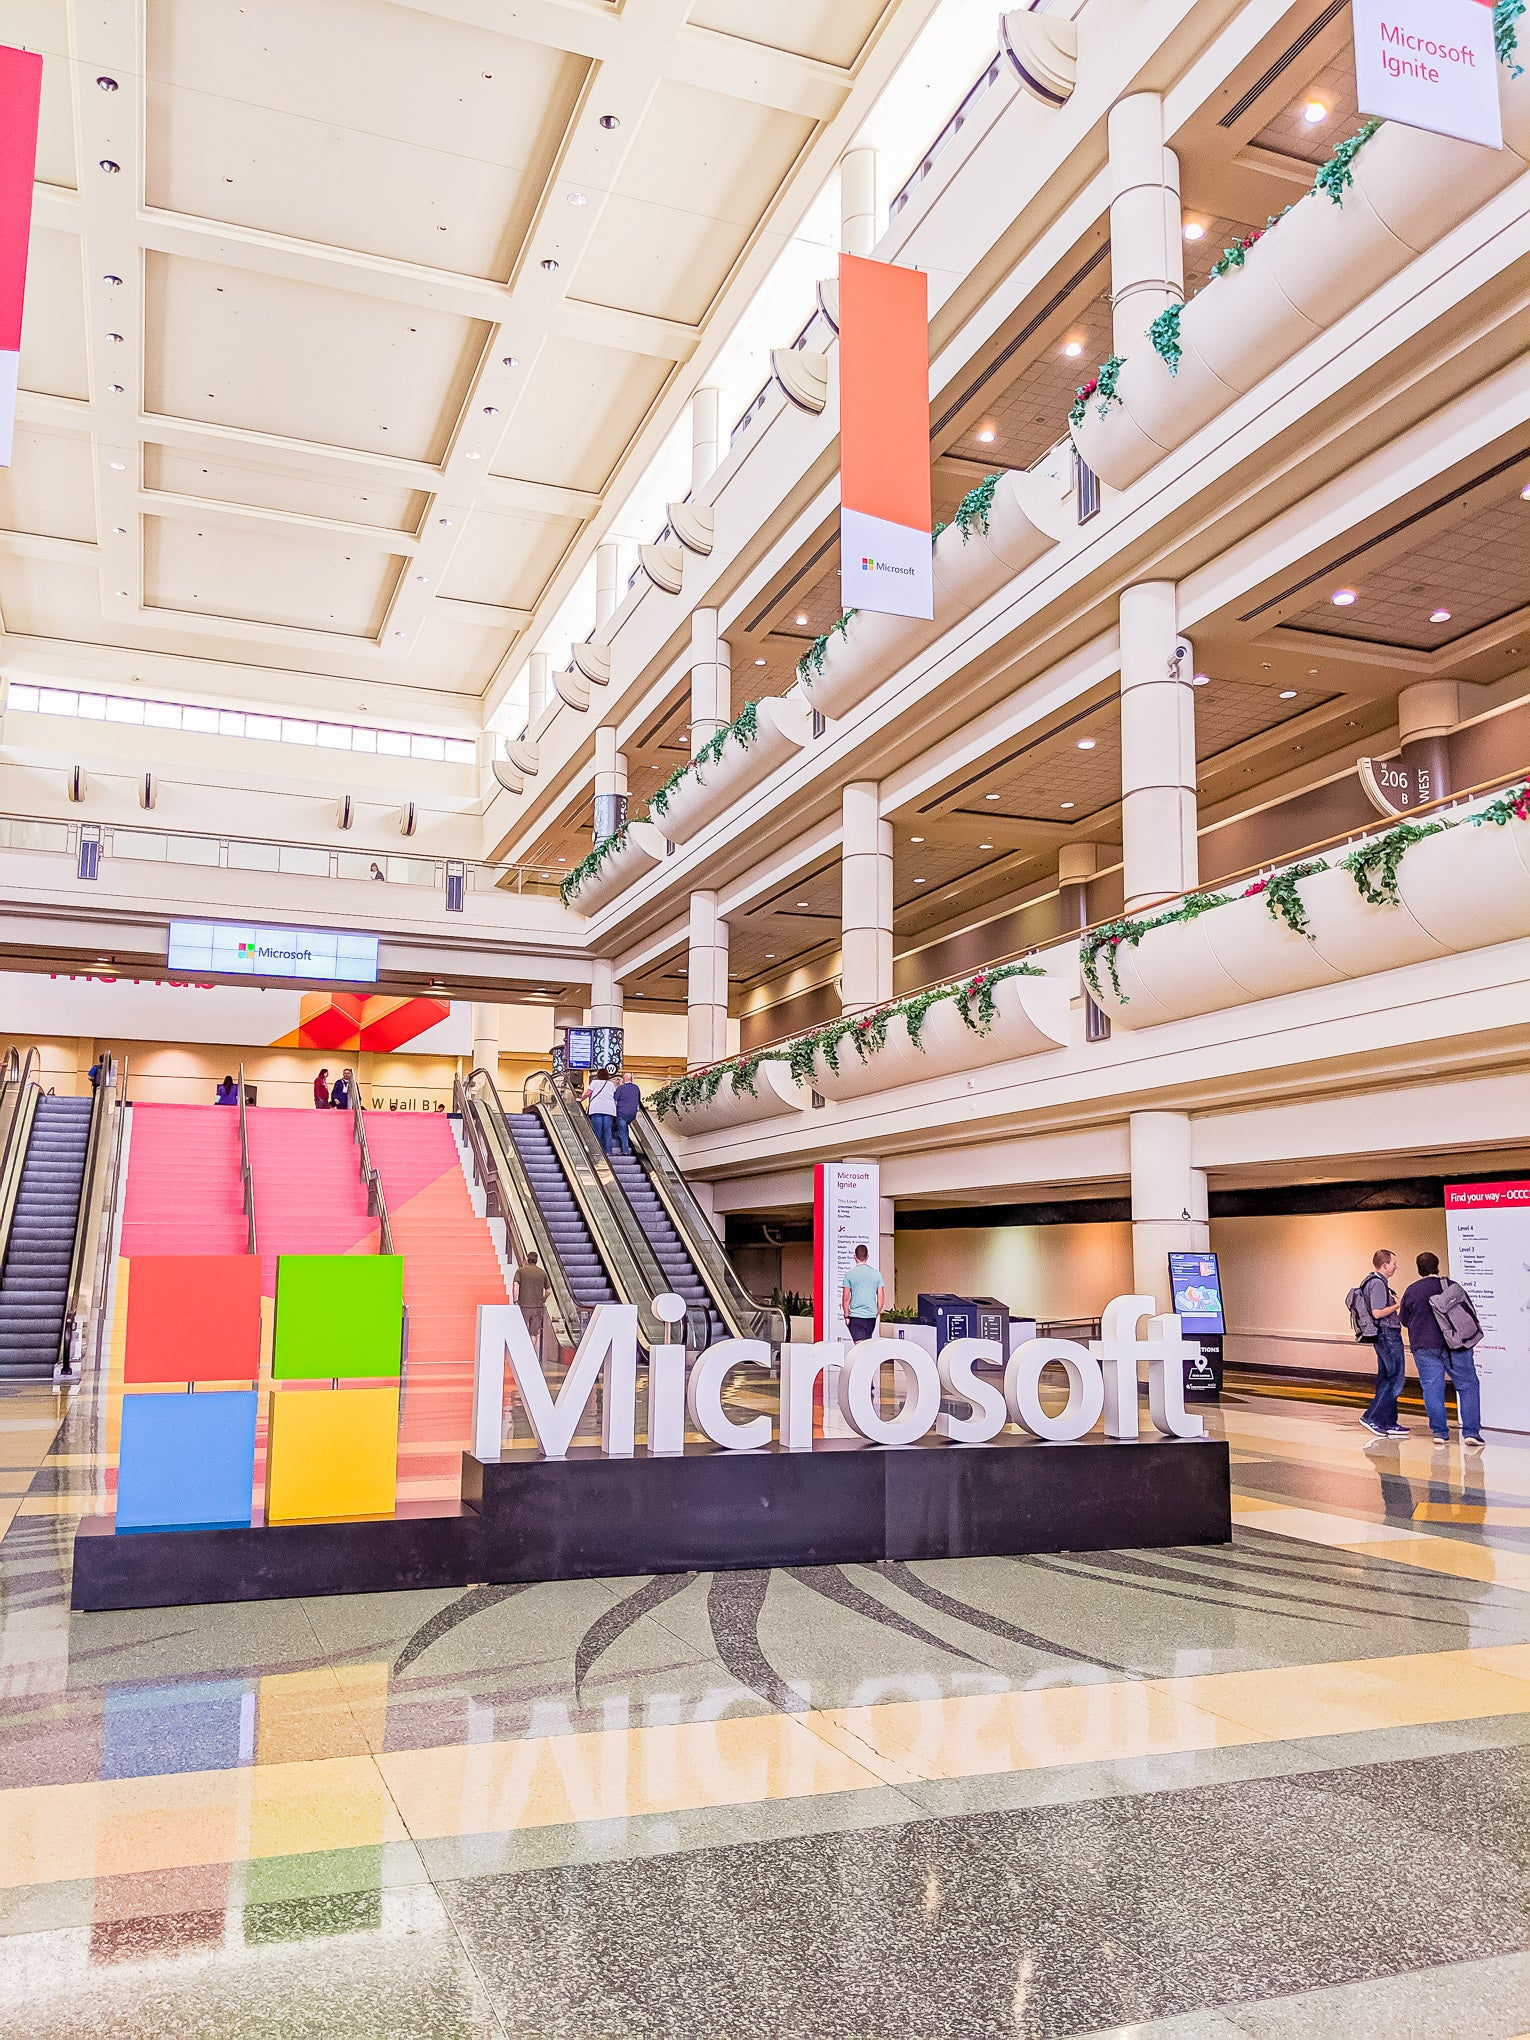 Microsoft Ignite 2019 at the Orange County Convention Center